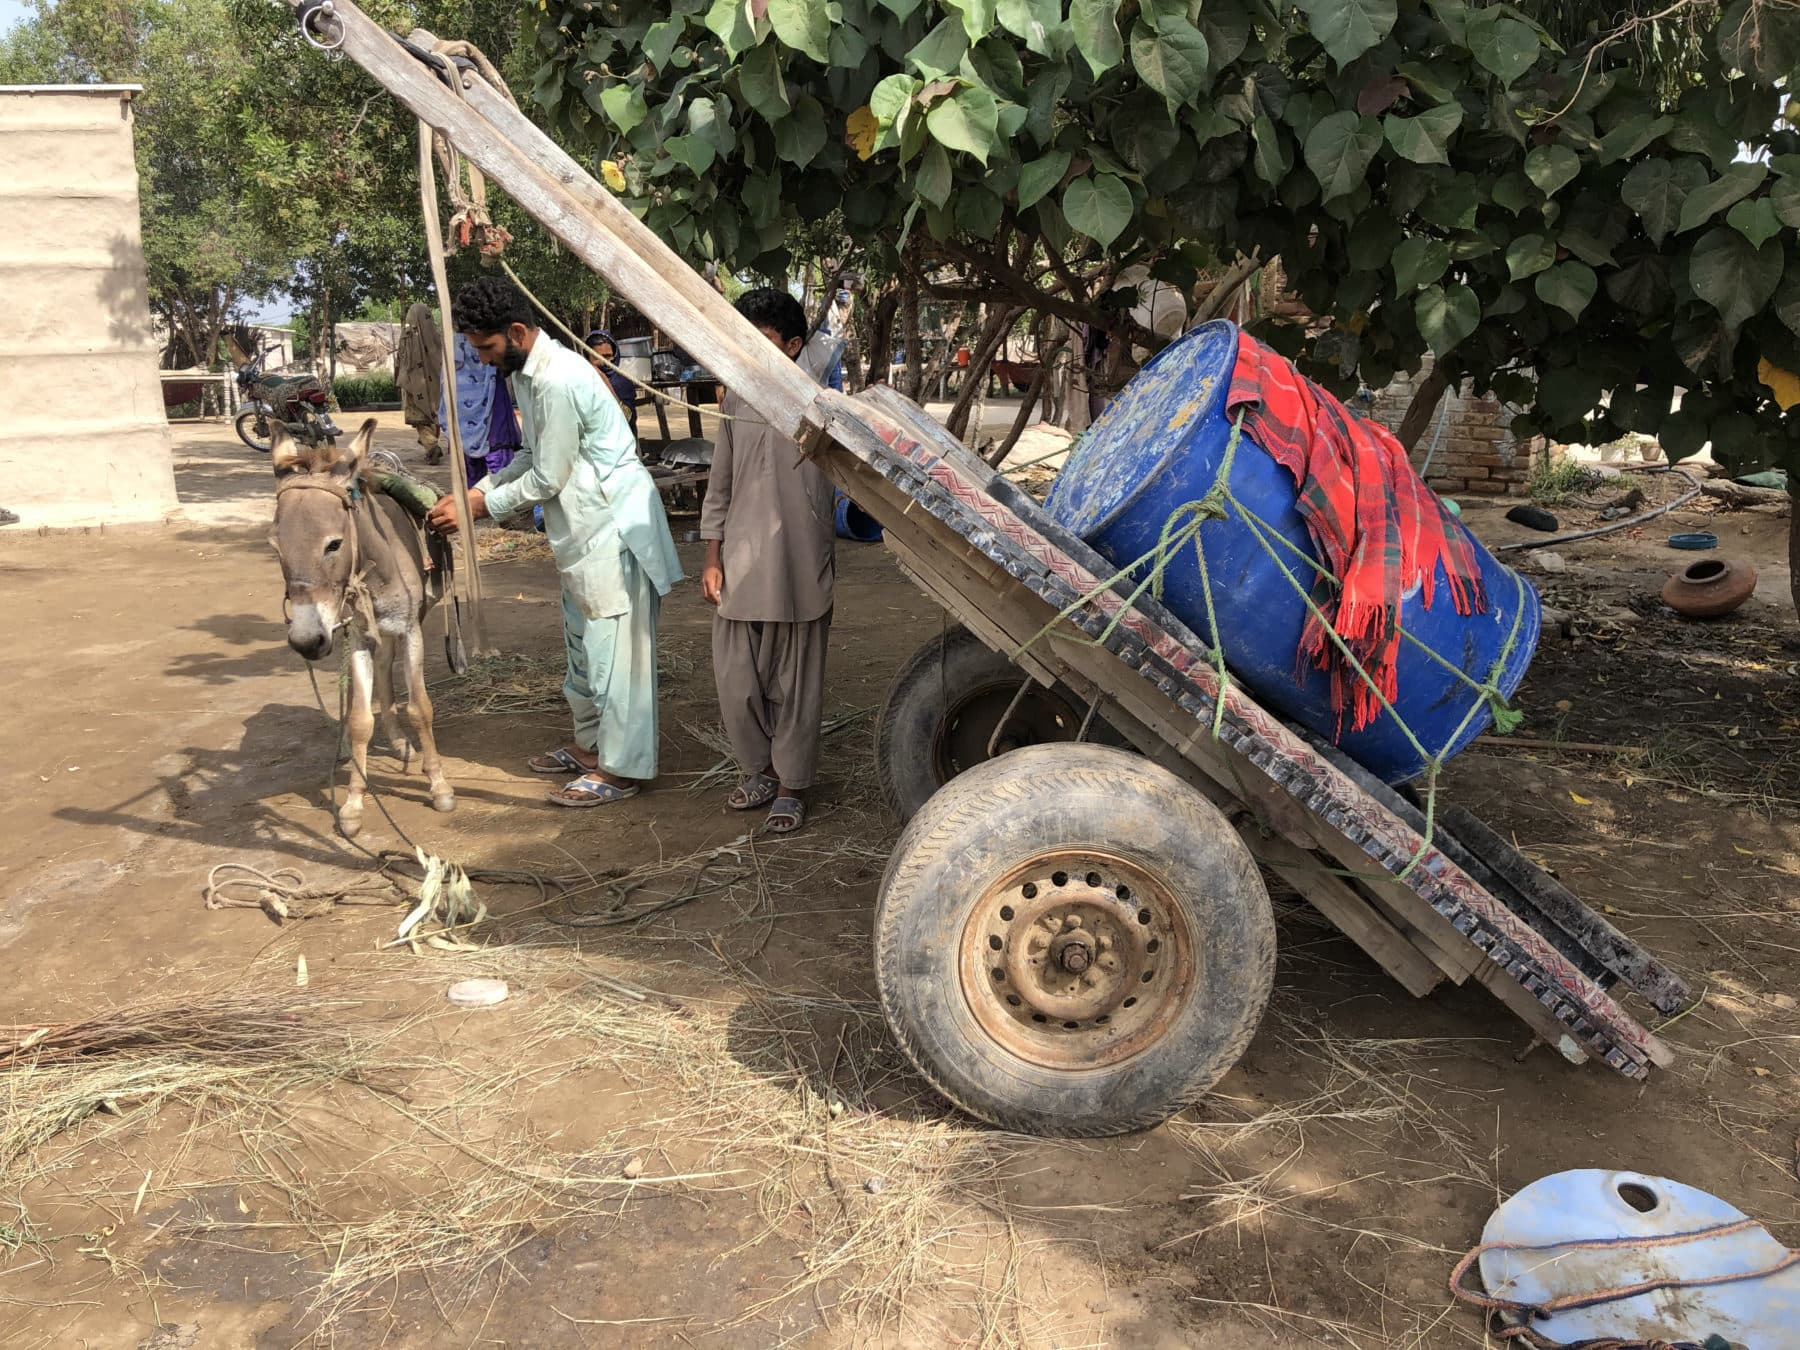 A donkey cart being prepared to fetch water for Barkat's family in Rato Khan Rind, in Thatta district of Sindh. — Photo by Zofeen Ebrahim